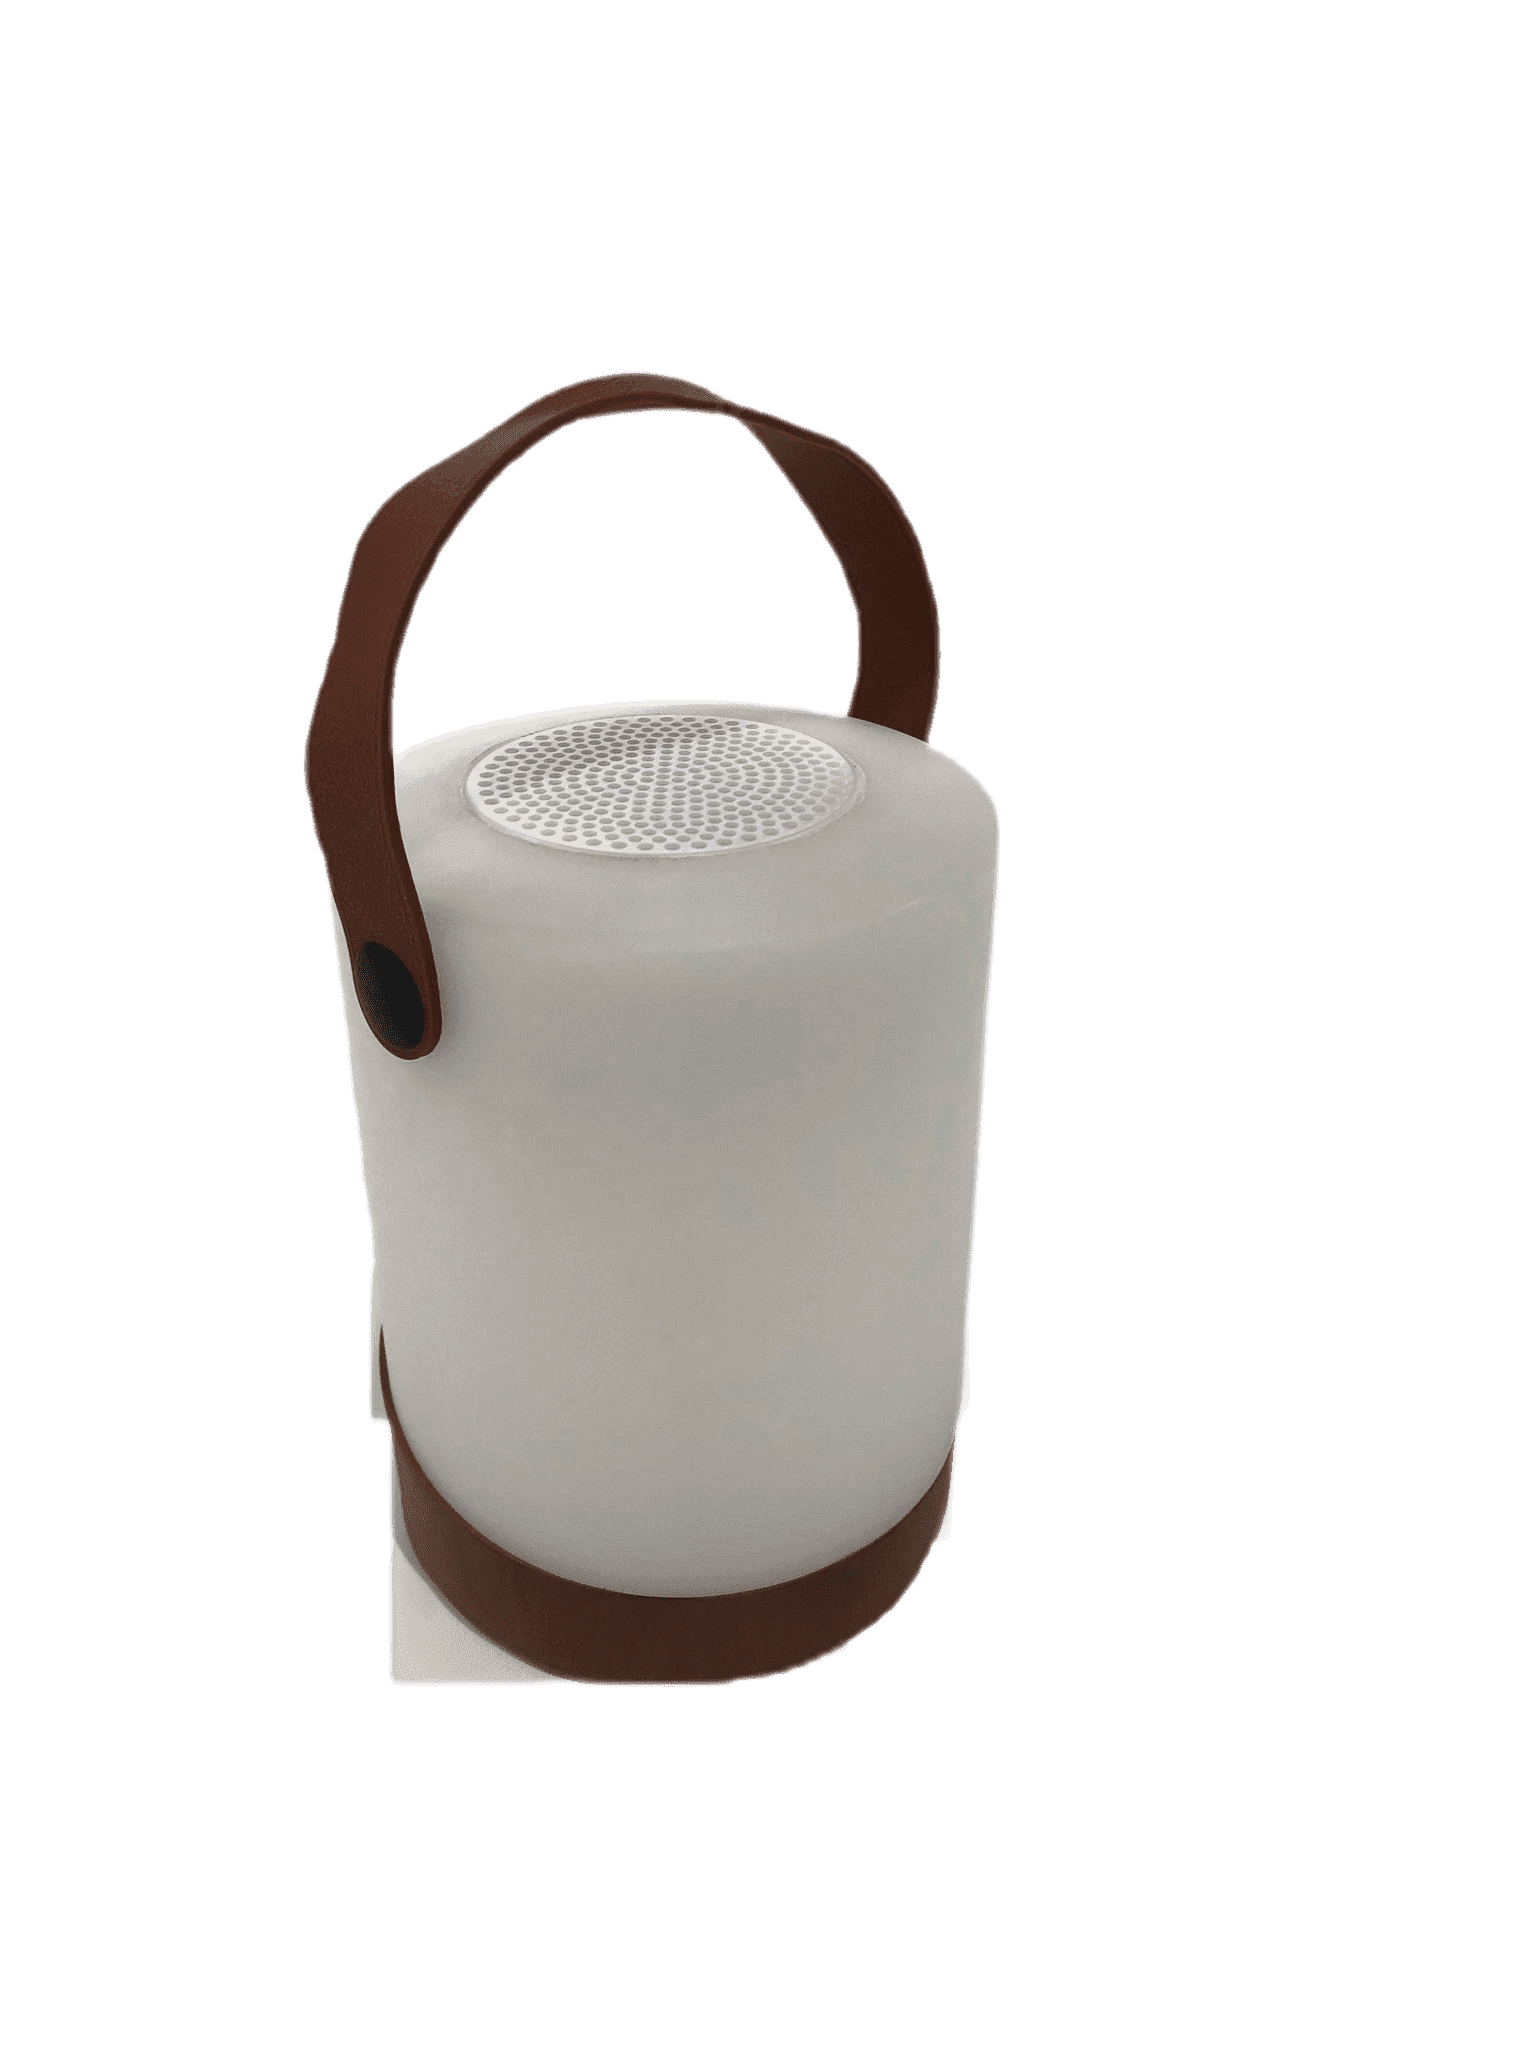 Cosy lamp mably plus wood